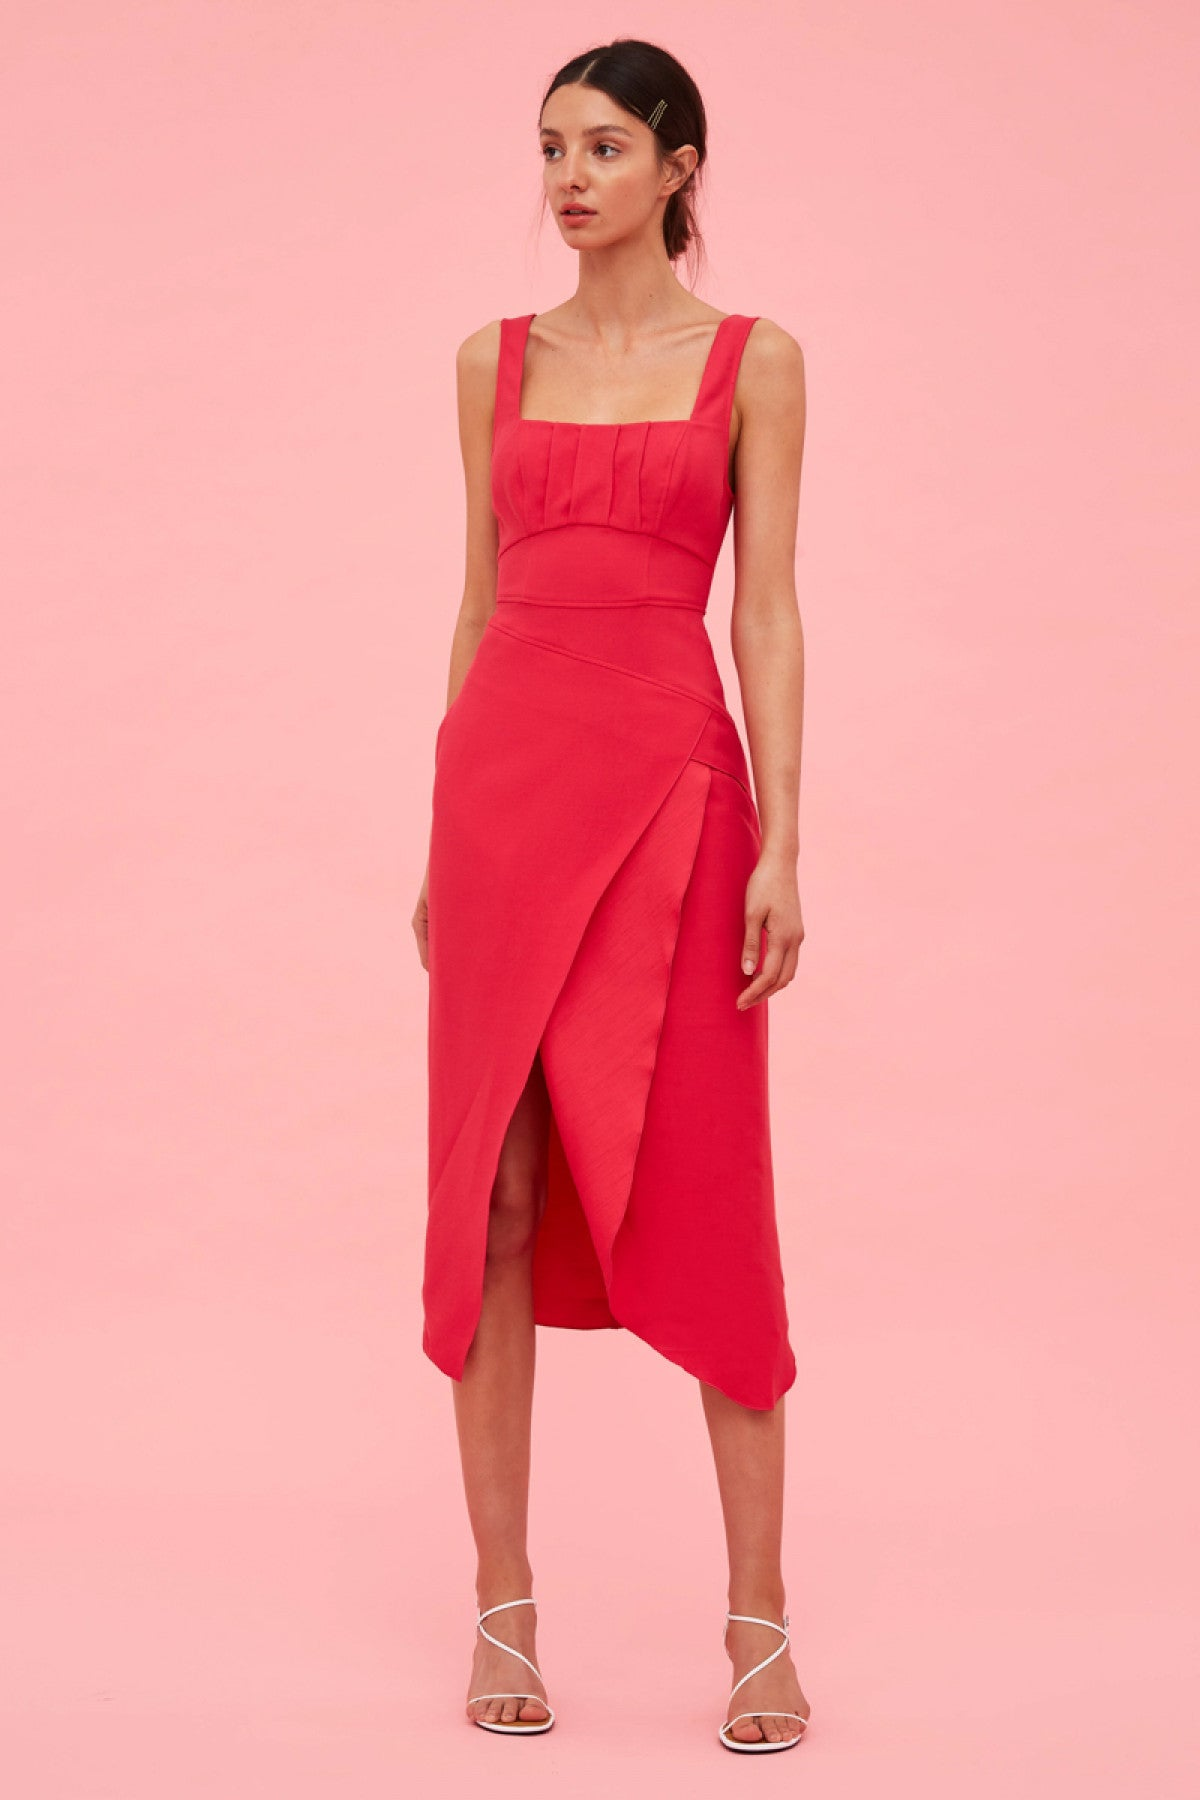 OVER AGAIN DRESS fuchsia